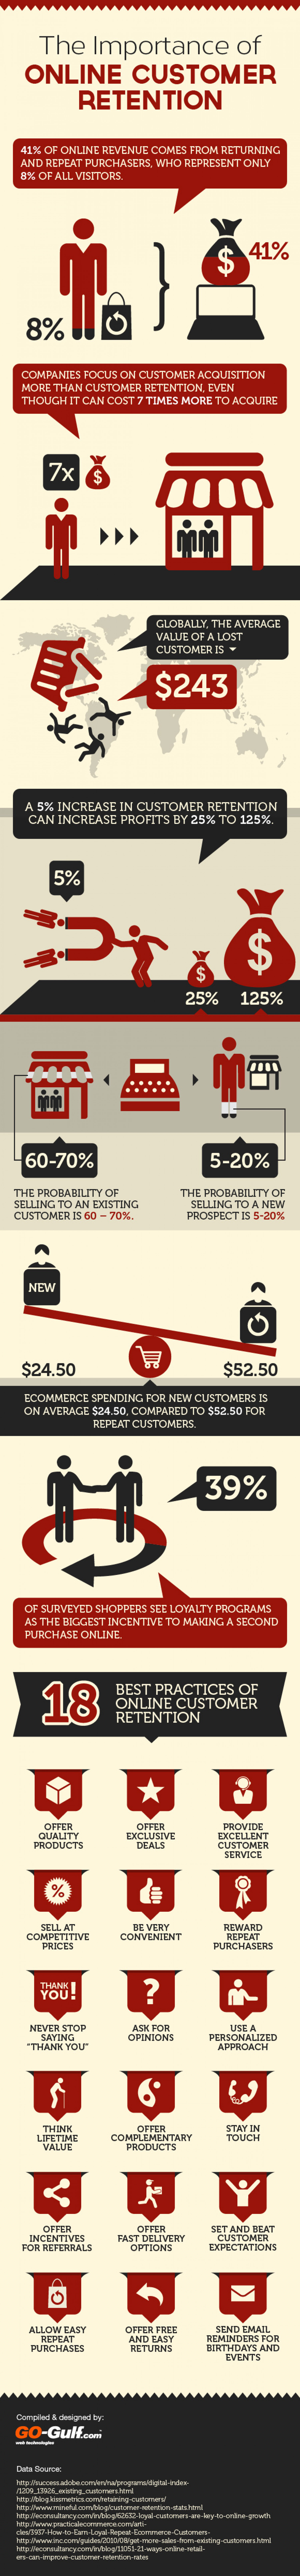 The Importance of Online Customer Retention Infographic